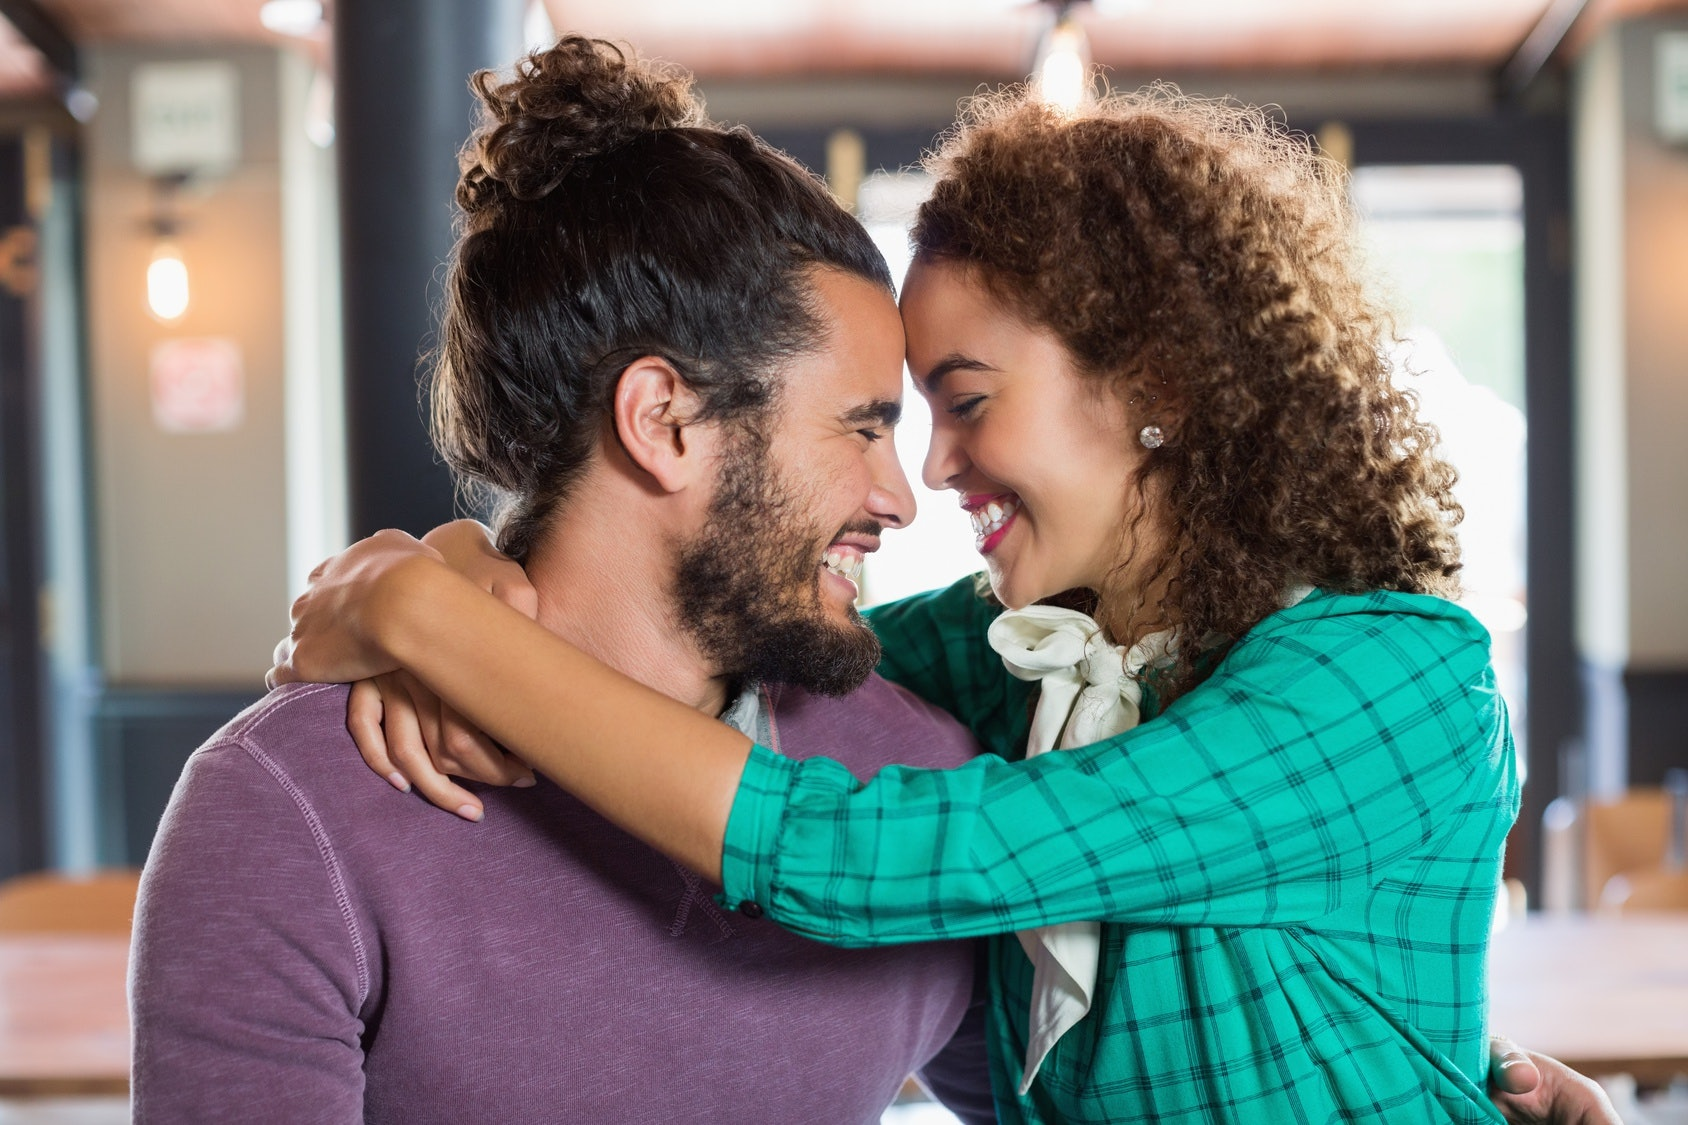 Couples exercises to bring you closer